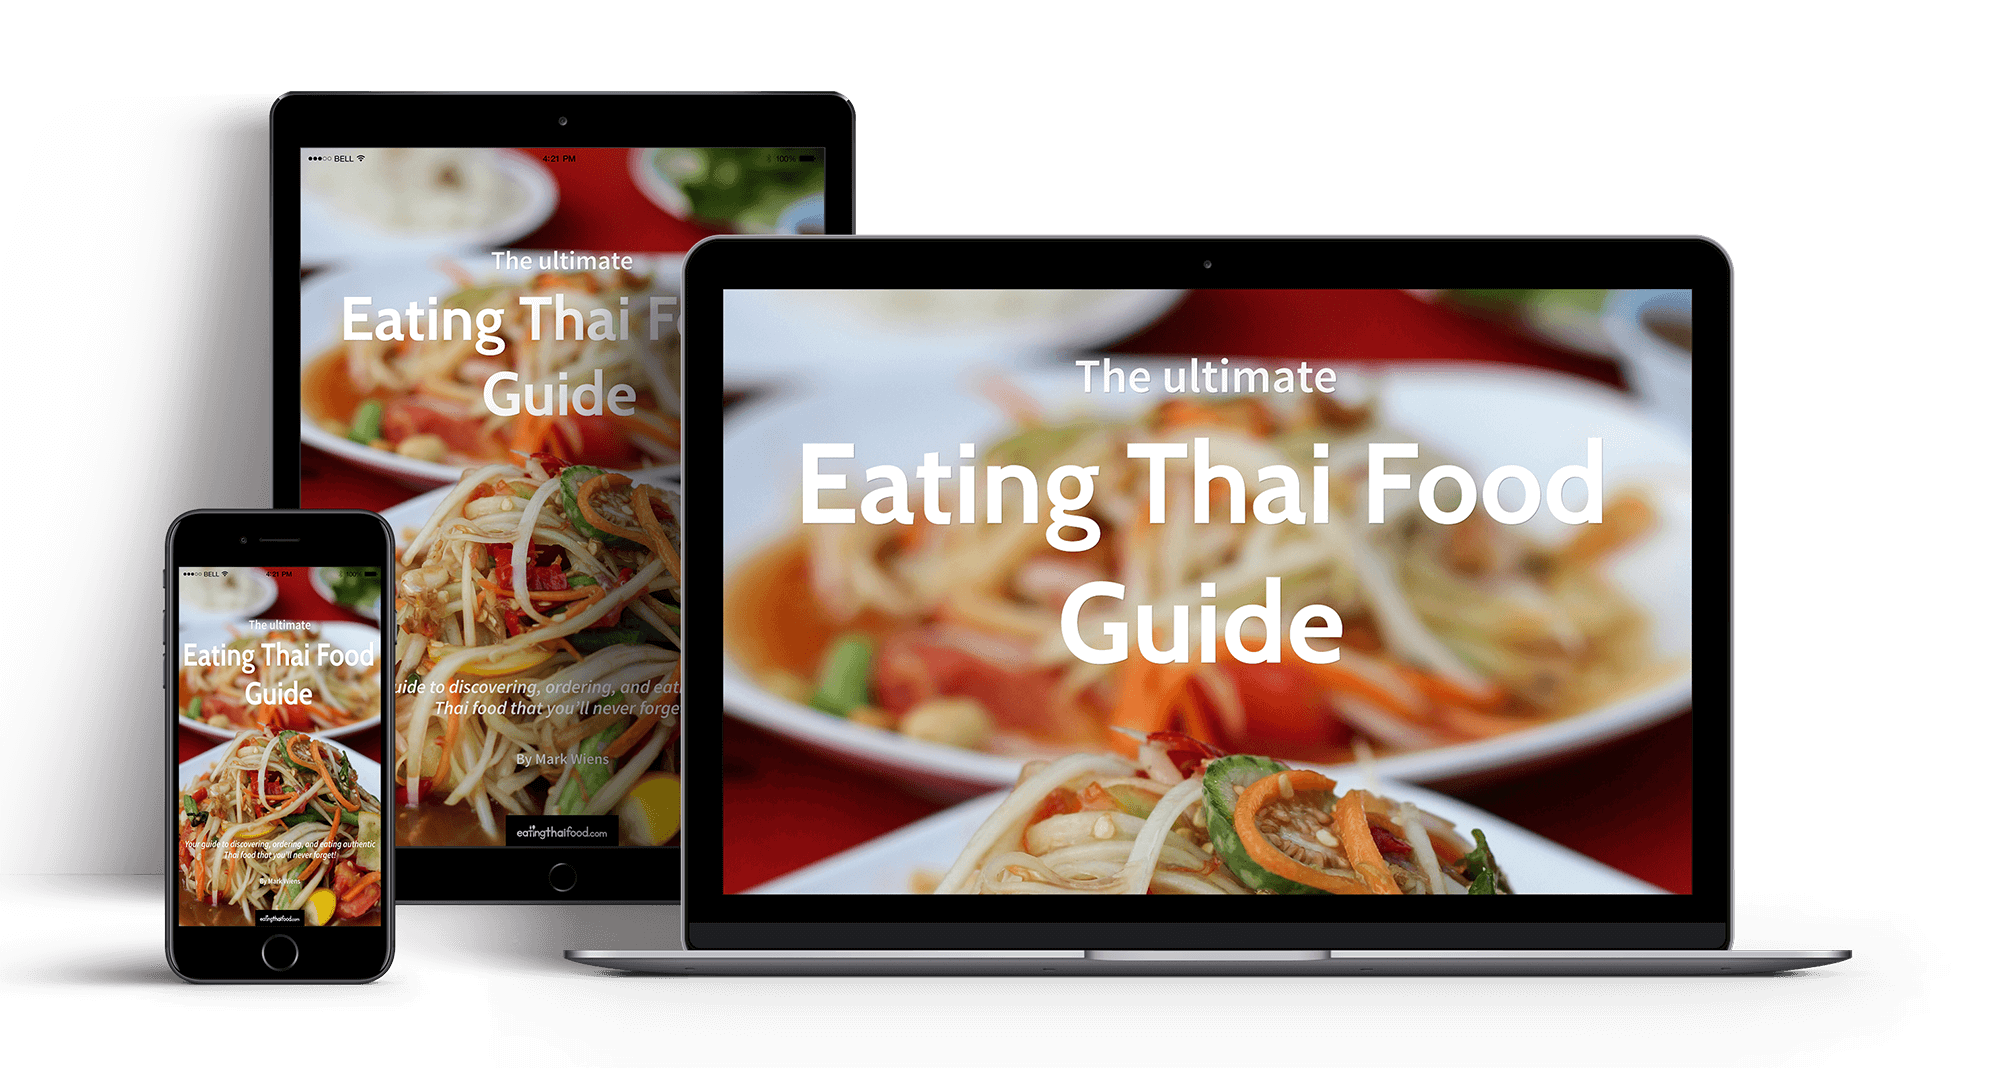 Eating thai food guide thai street food restaurants and directions and menus up to date and easy to read was just so helpful in my own quest to search out bangkoks best street food forumfinder Choice Image